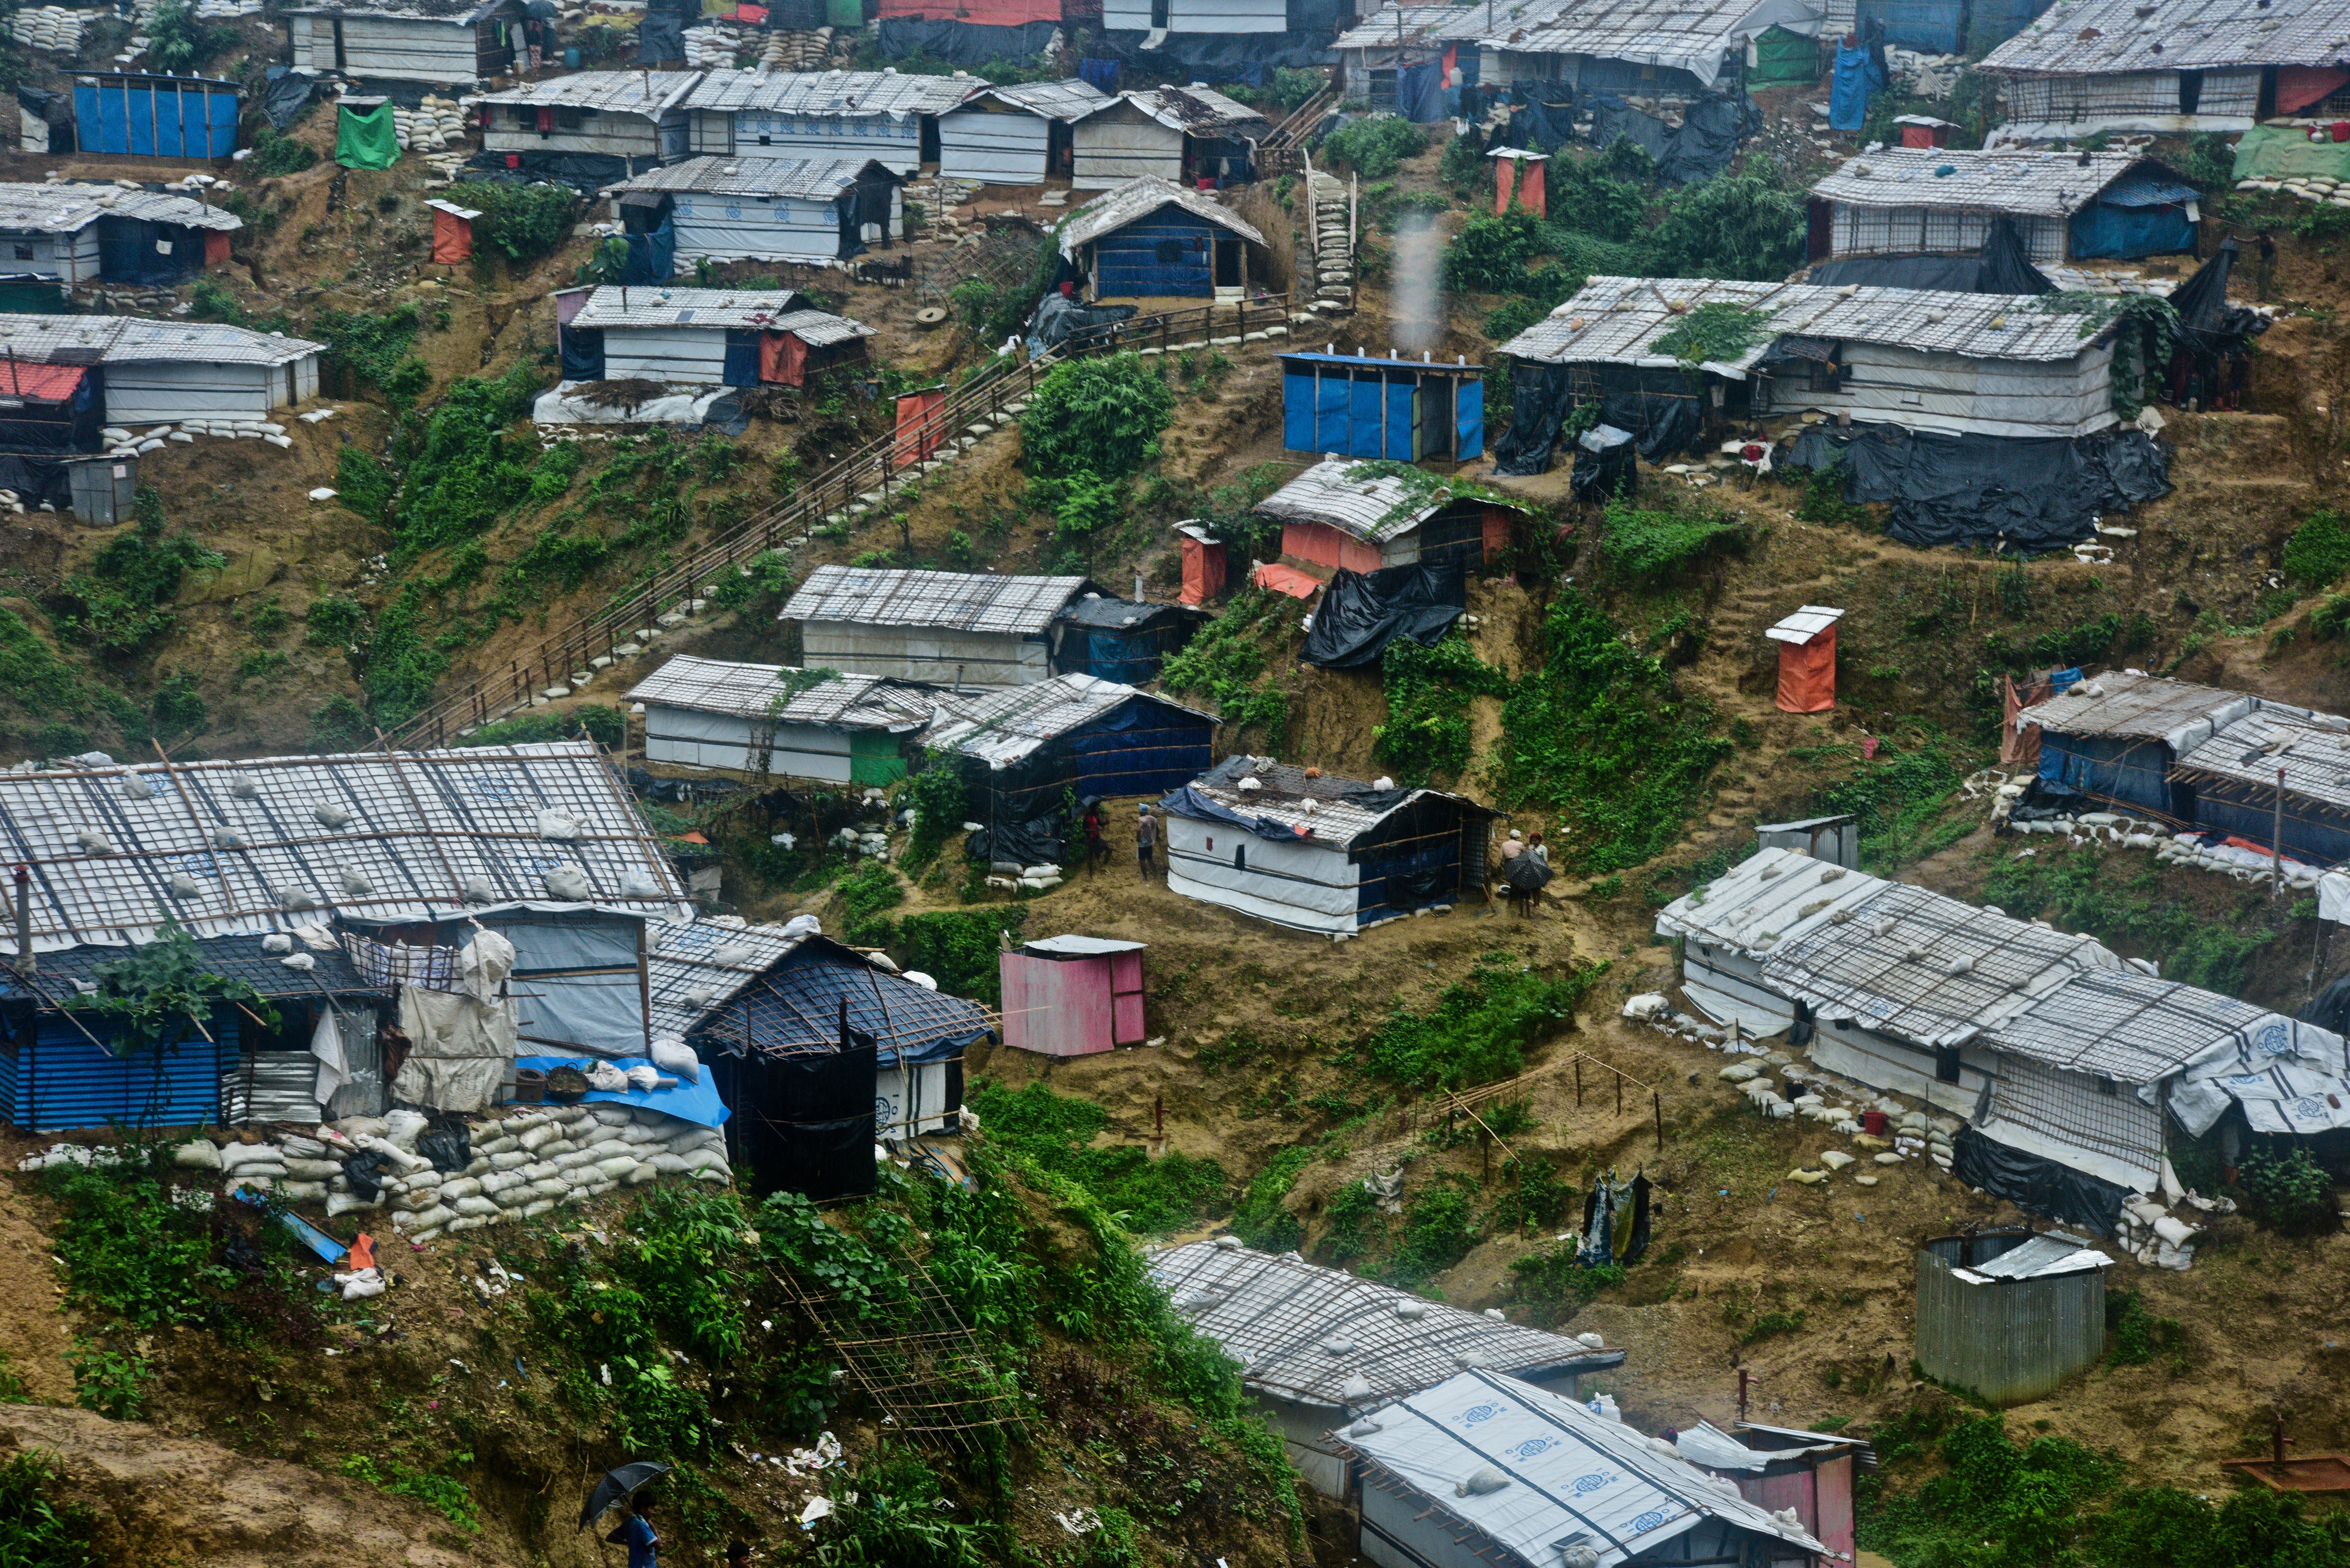 Temporary shelters on hillside